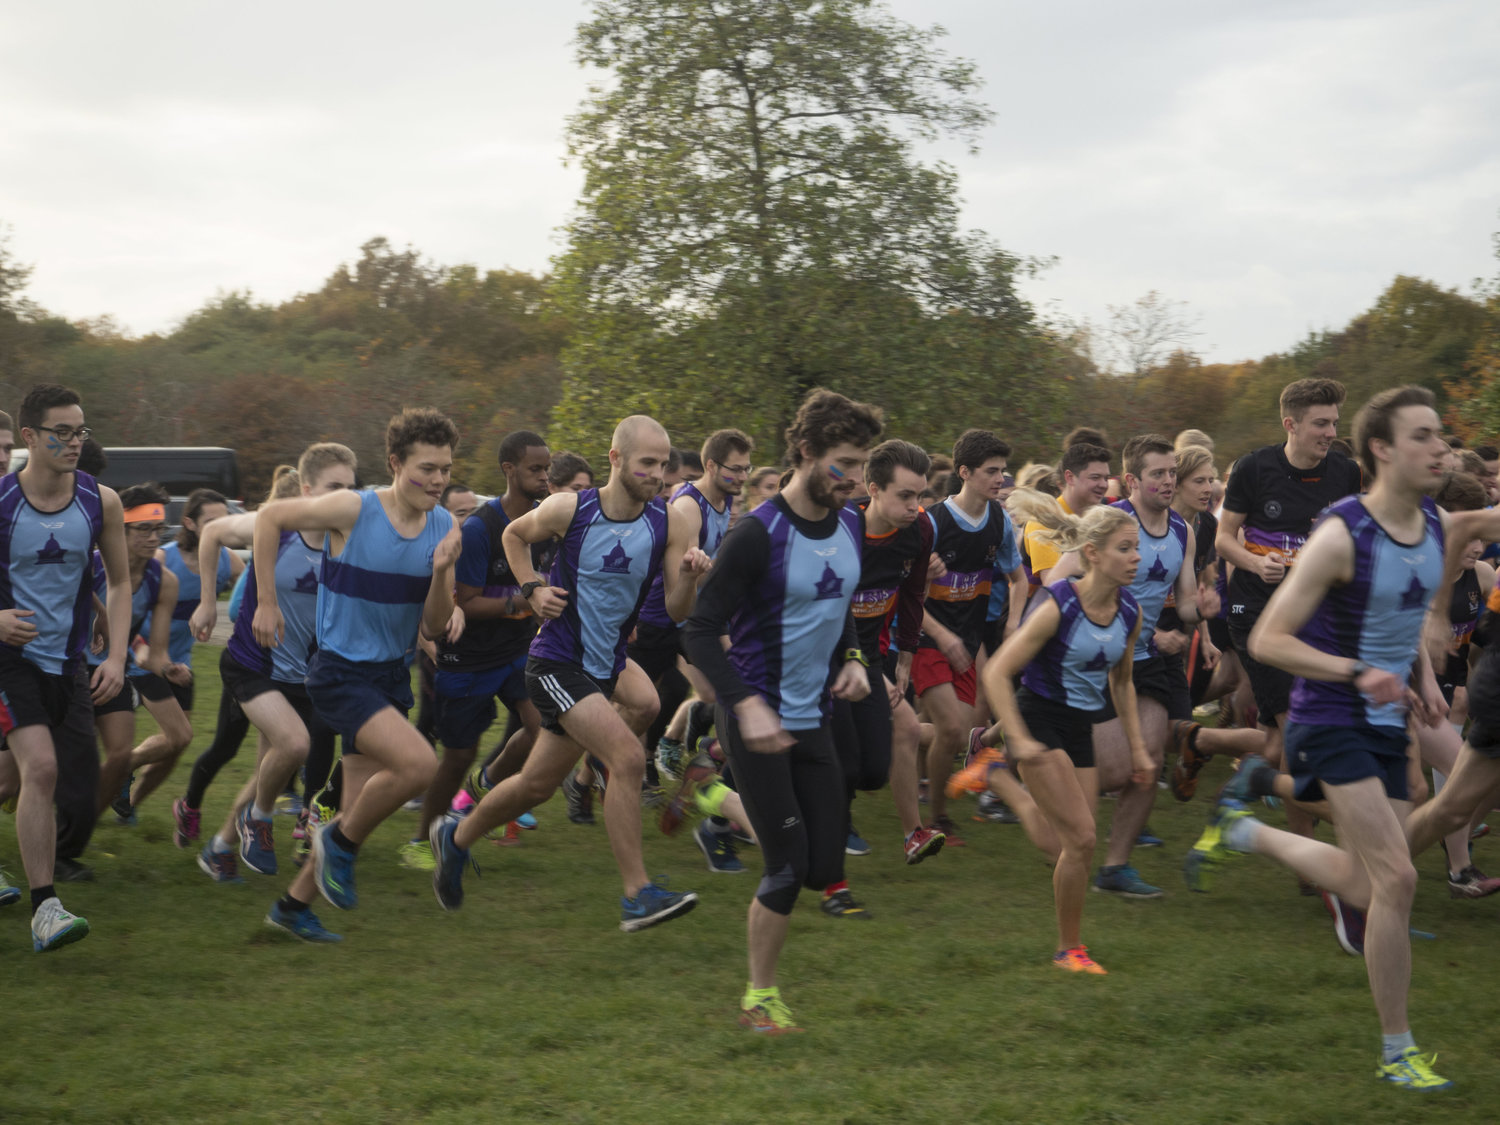 Mixed Running - Kindly Sponsored by DLA Piper